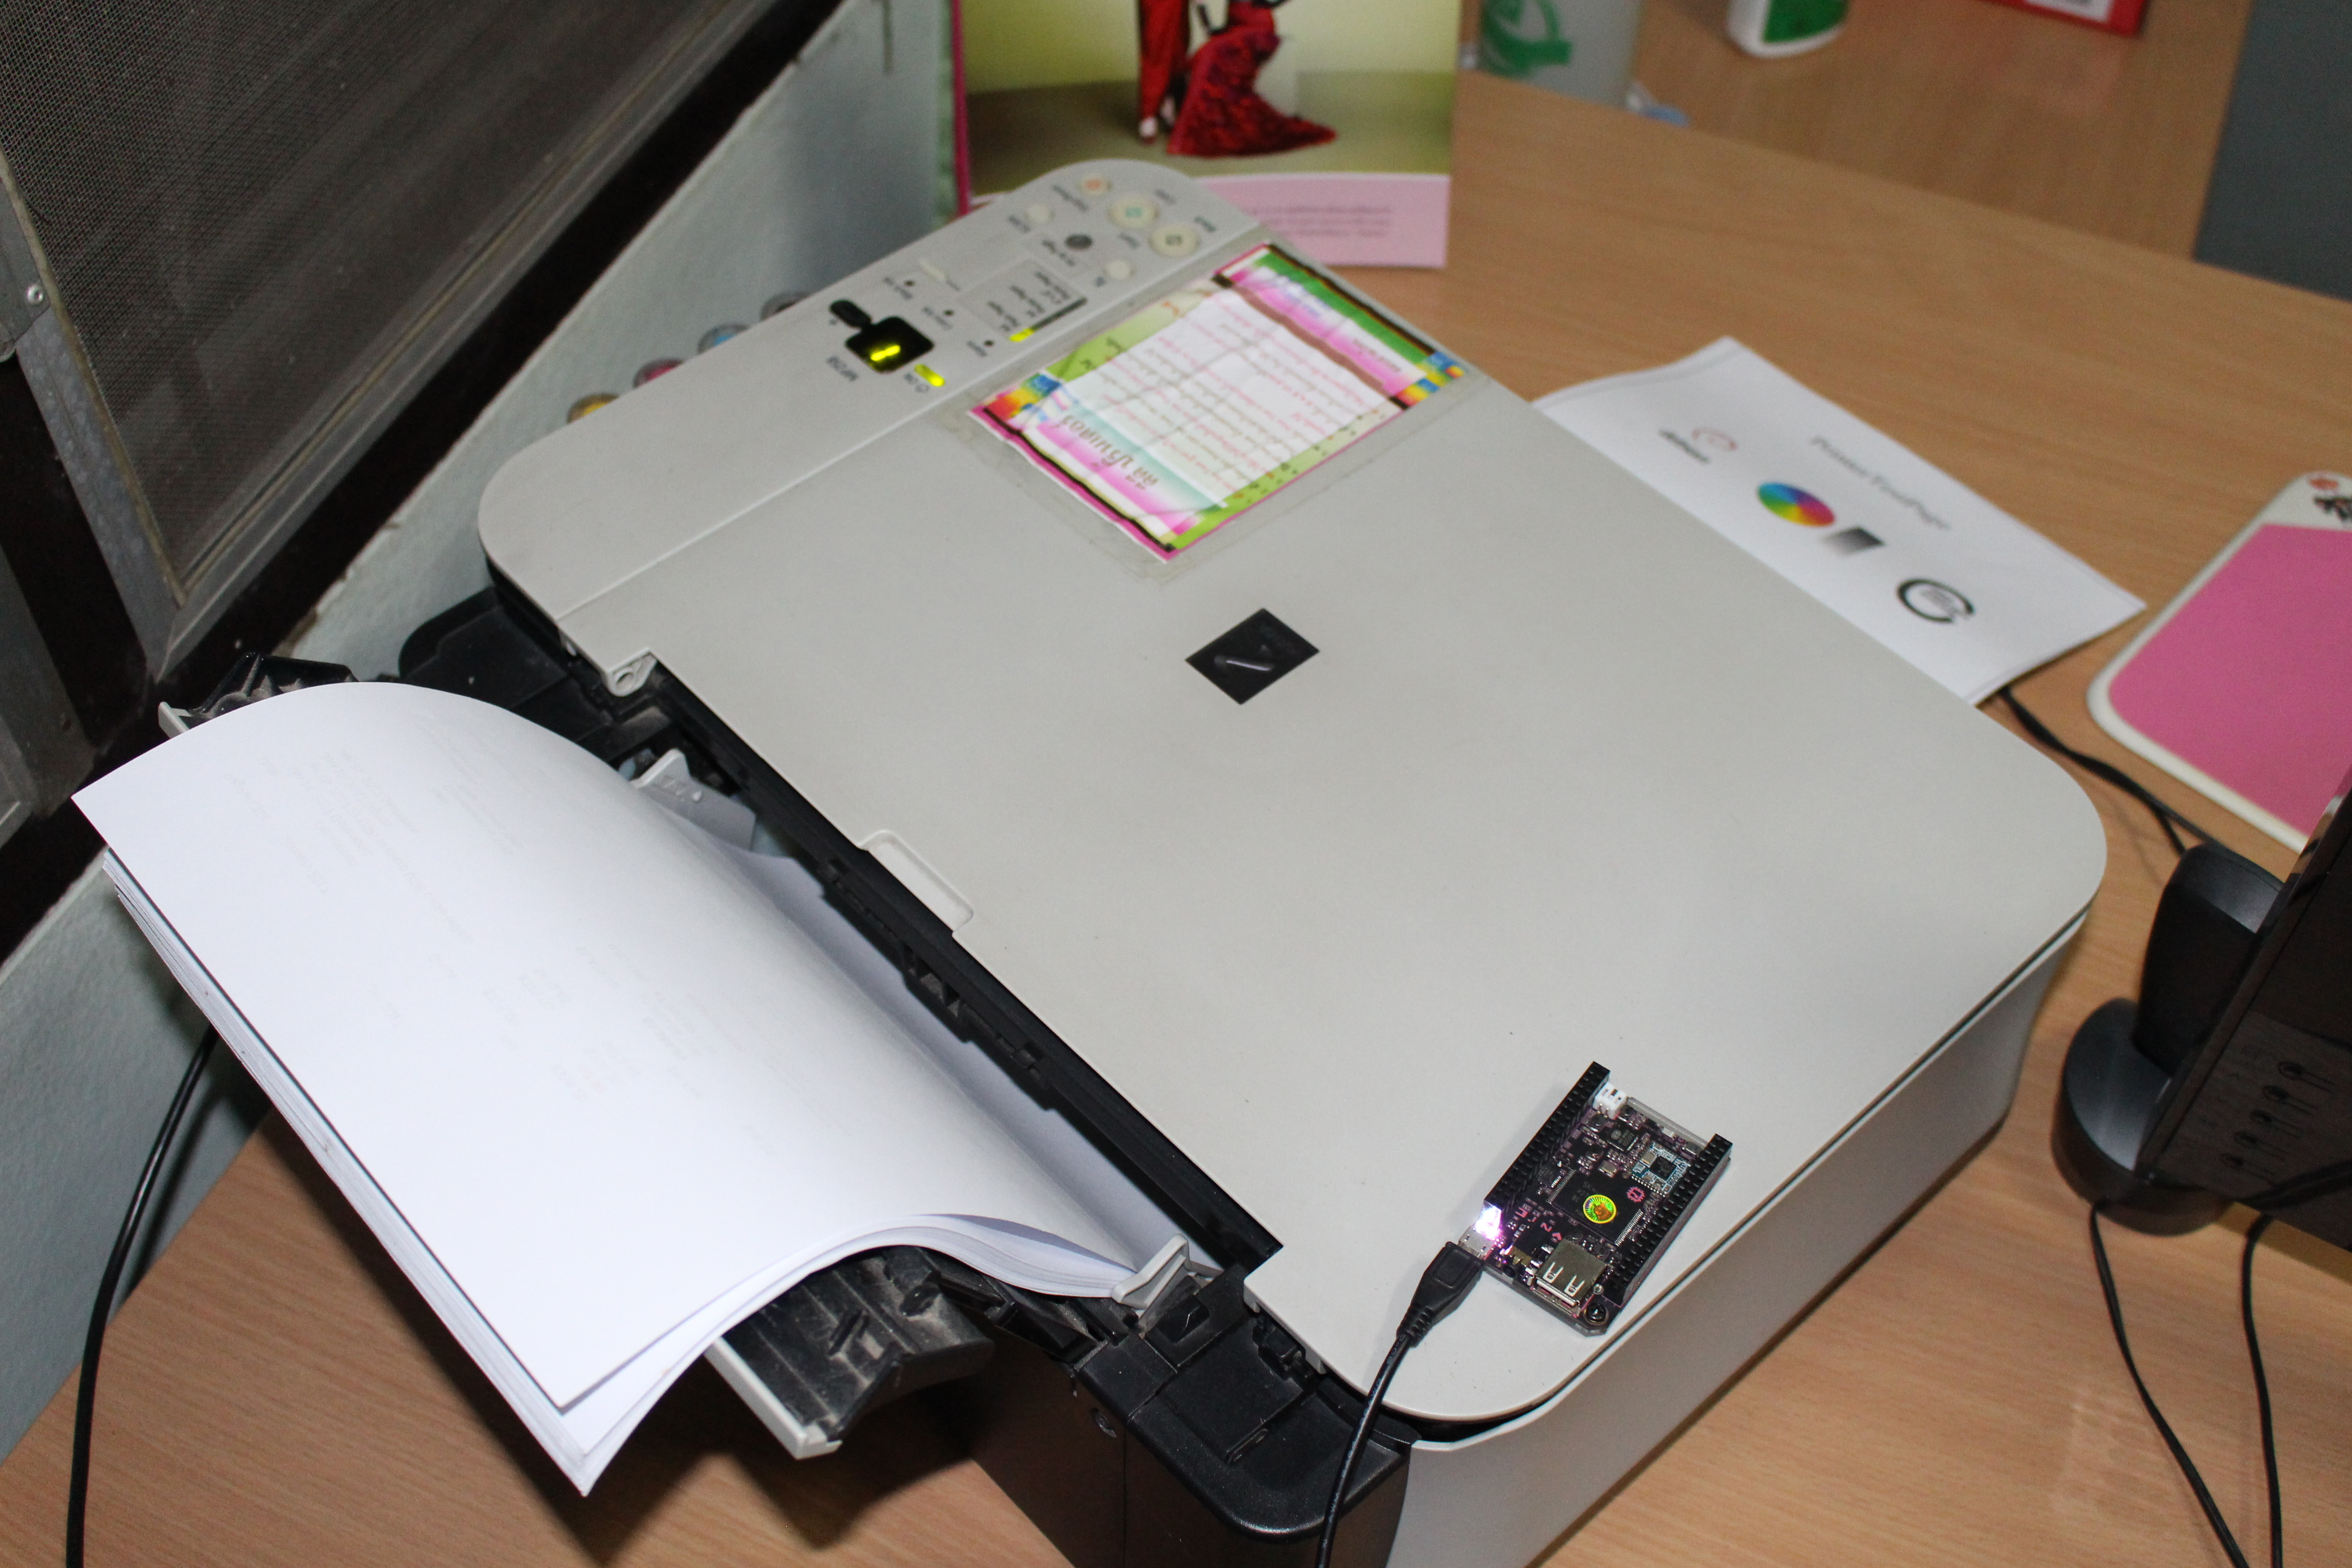 How to use the printer